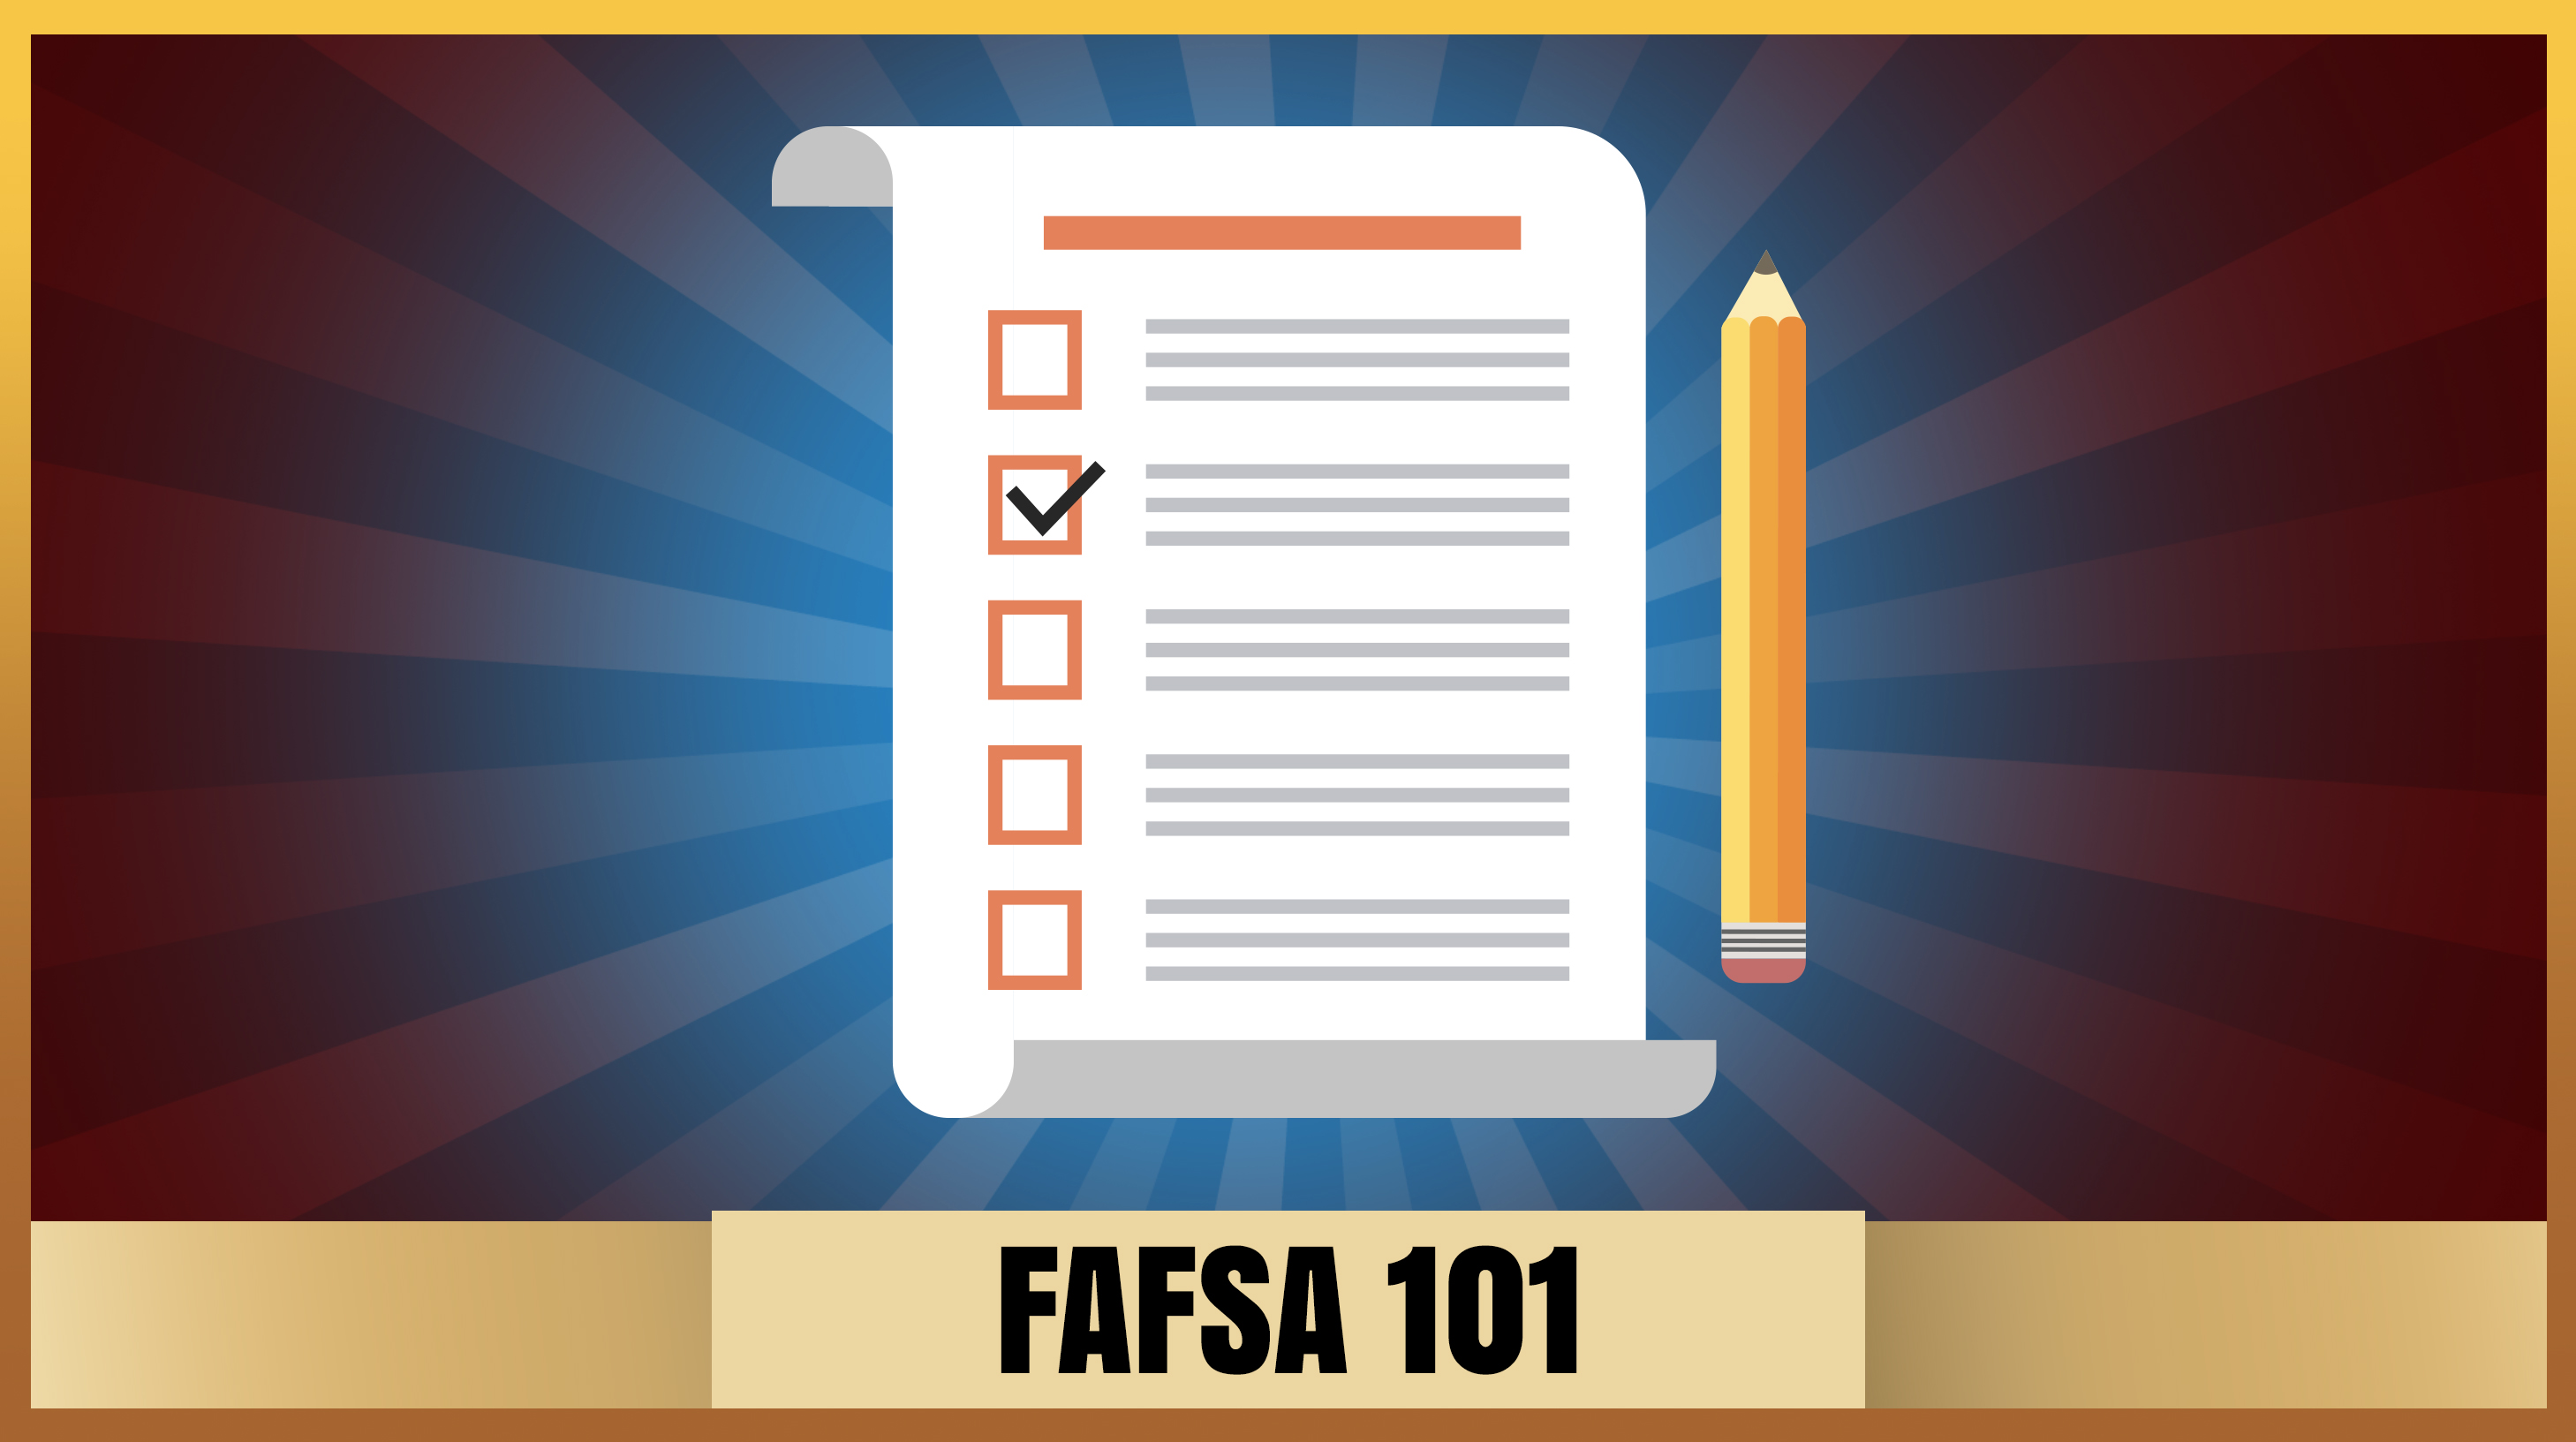 Picture of notes for FAFSA 101 Page